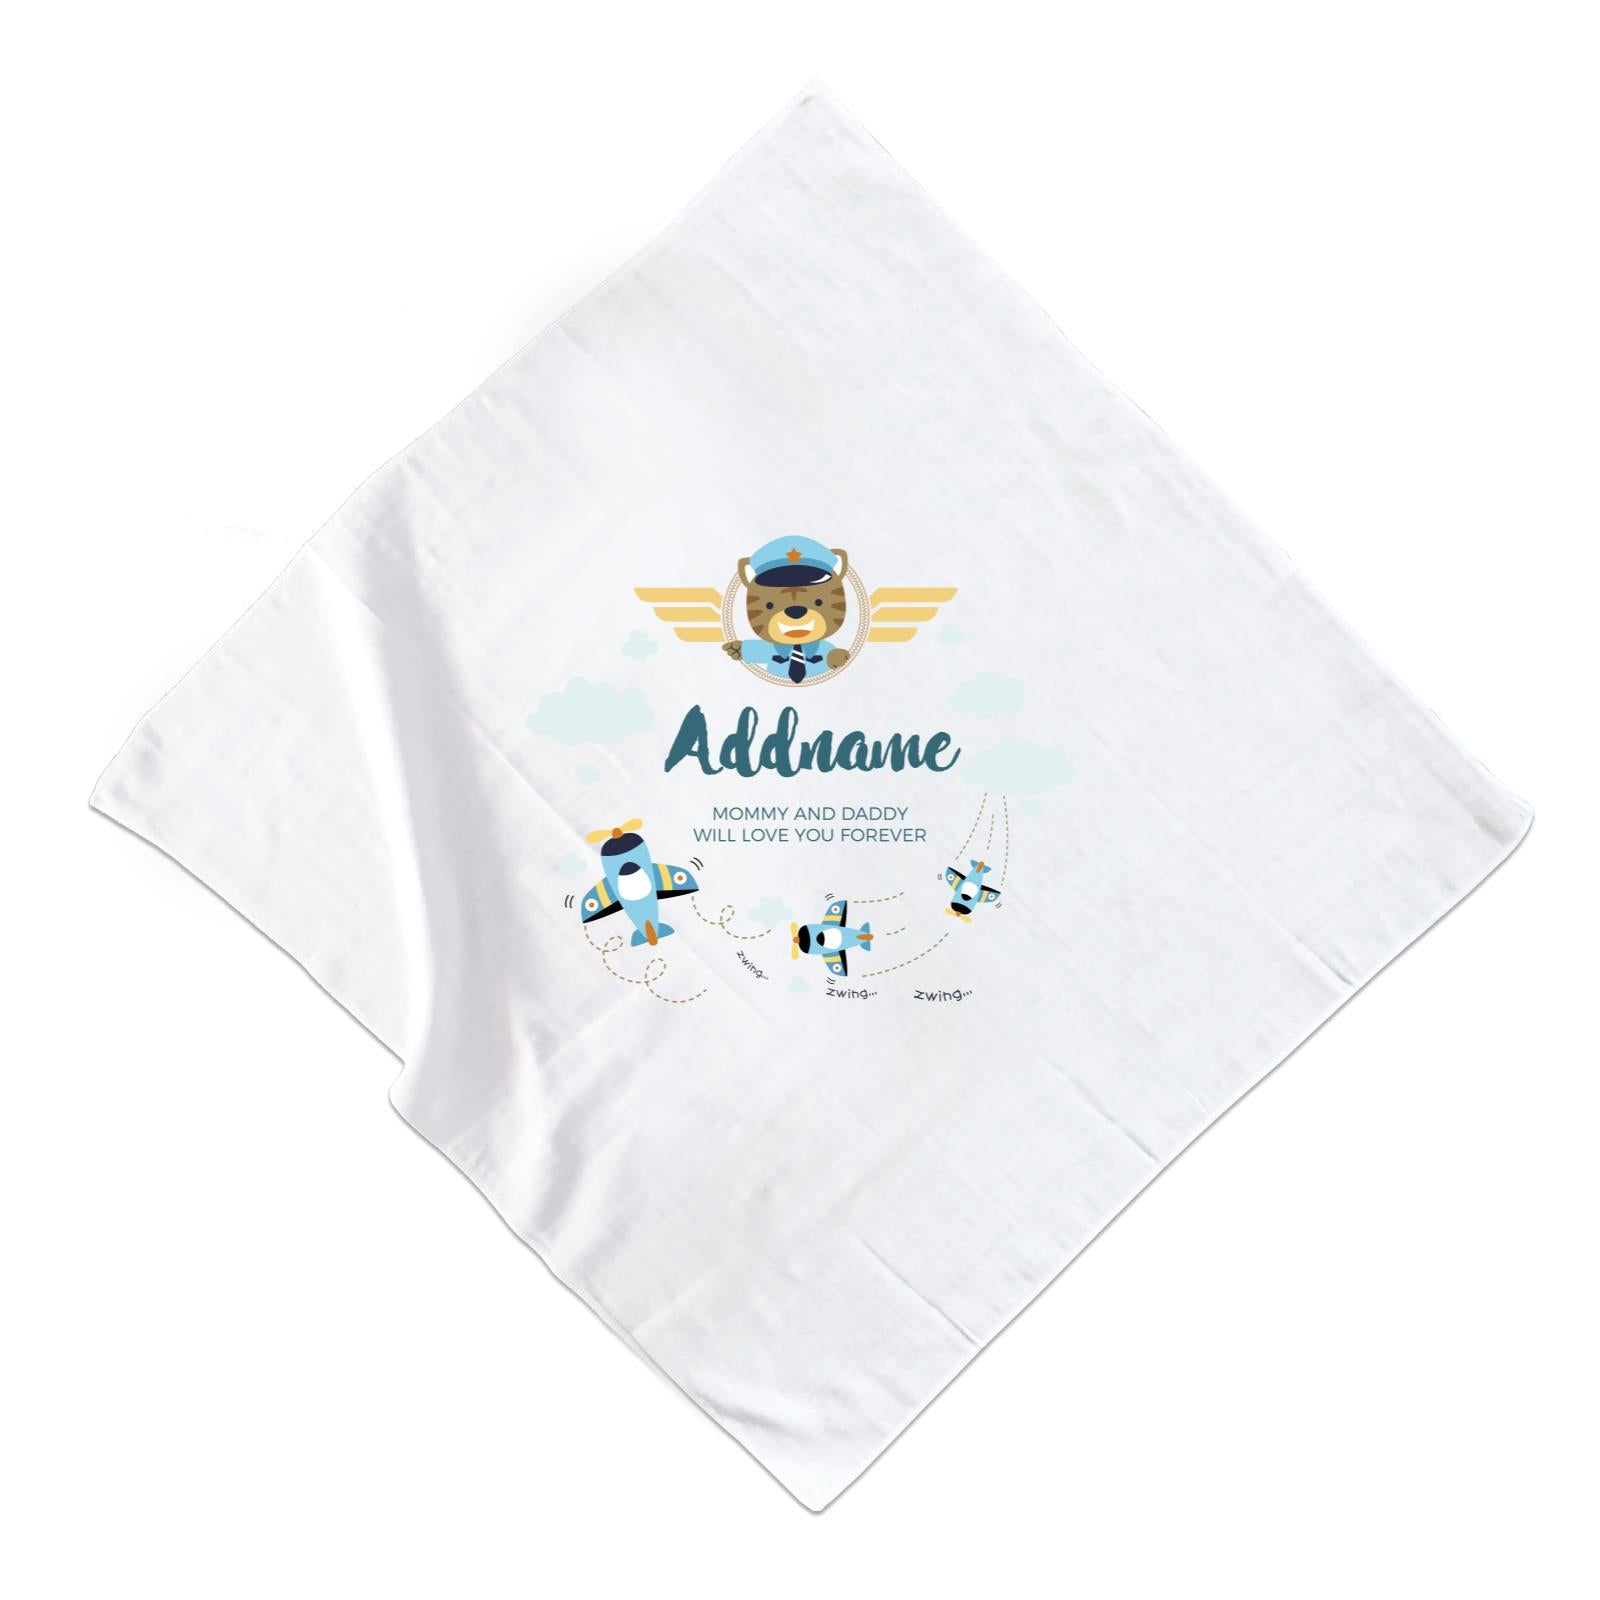 Cute Bear Pilot and Blue Planes Flying Personalizable with Name and Text Muslin Square